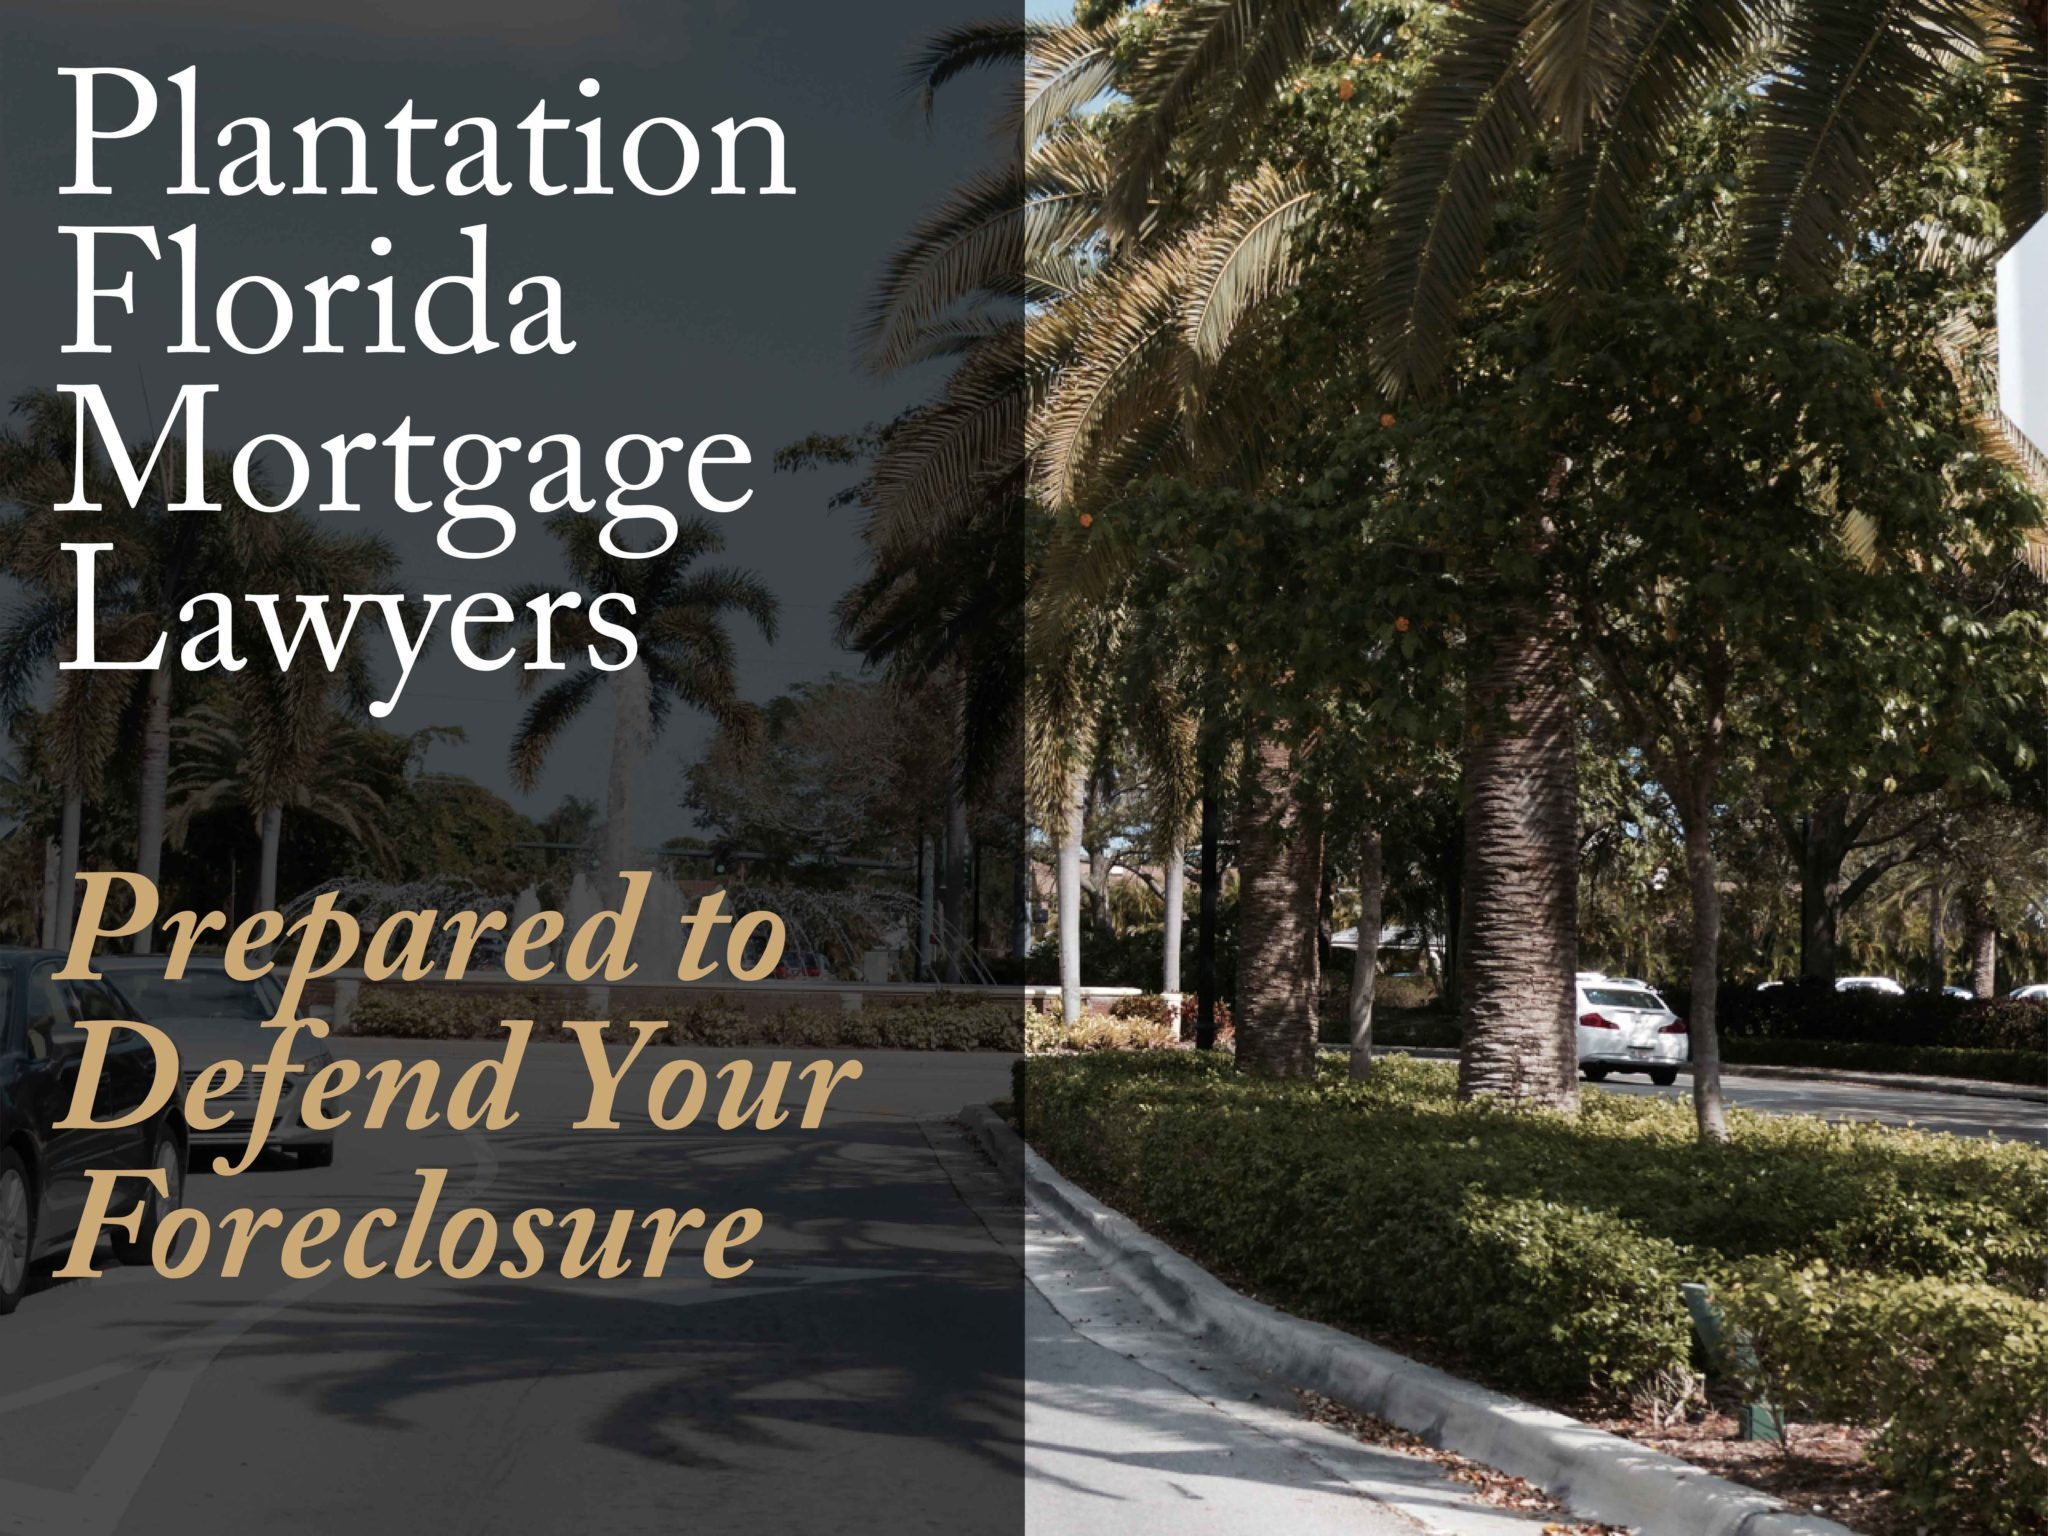 Plantation Florida Mortgage Lawyers - Prepared to Defend Your Foreclosure